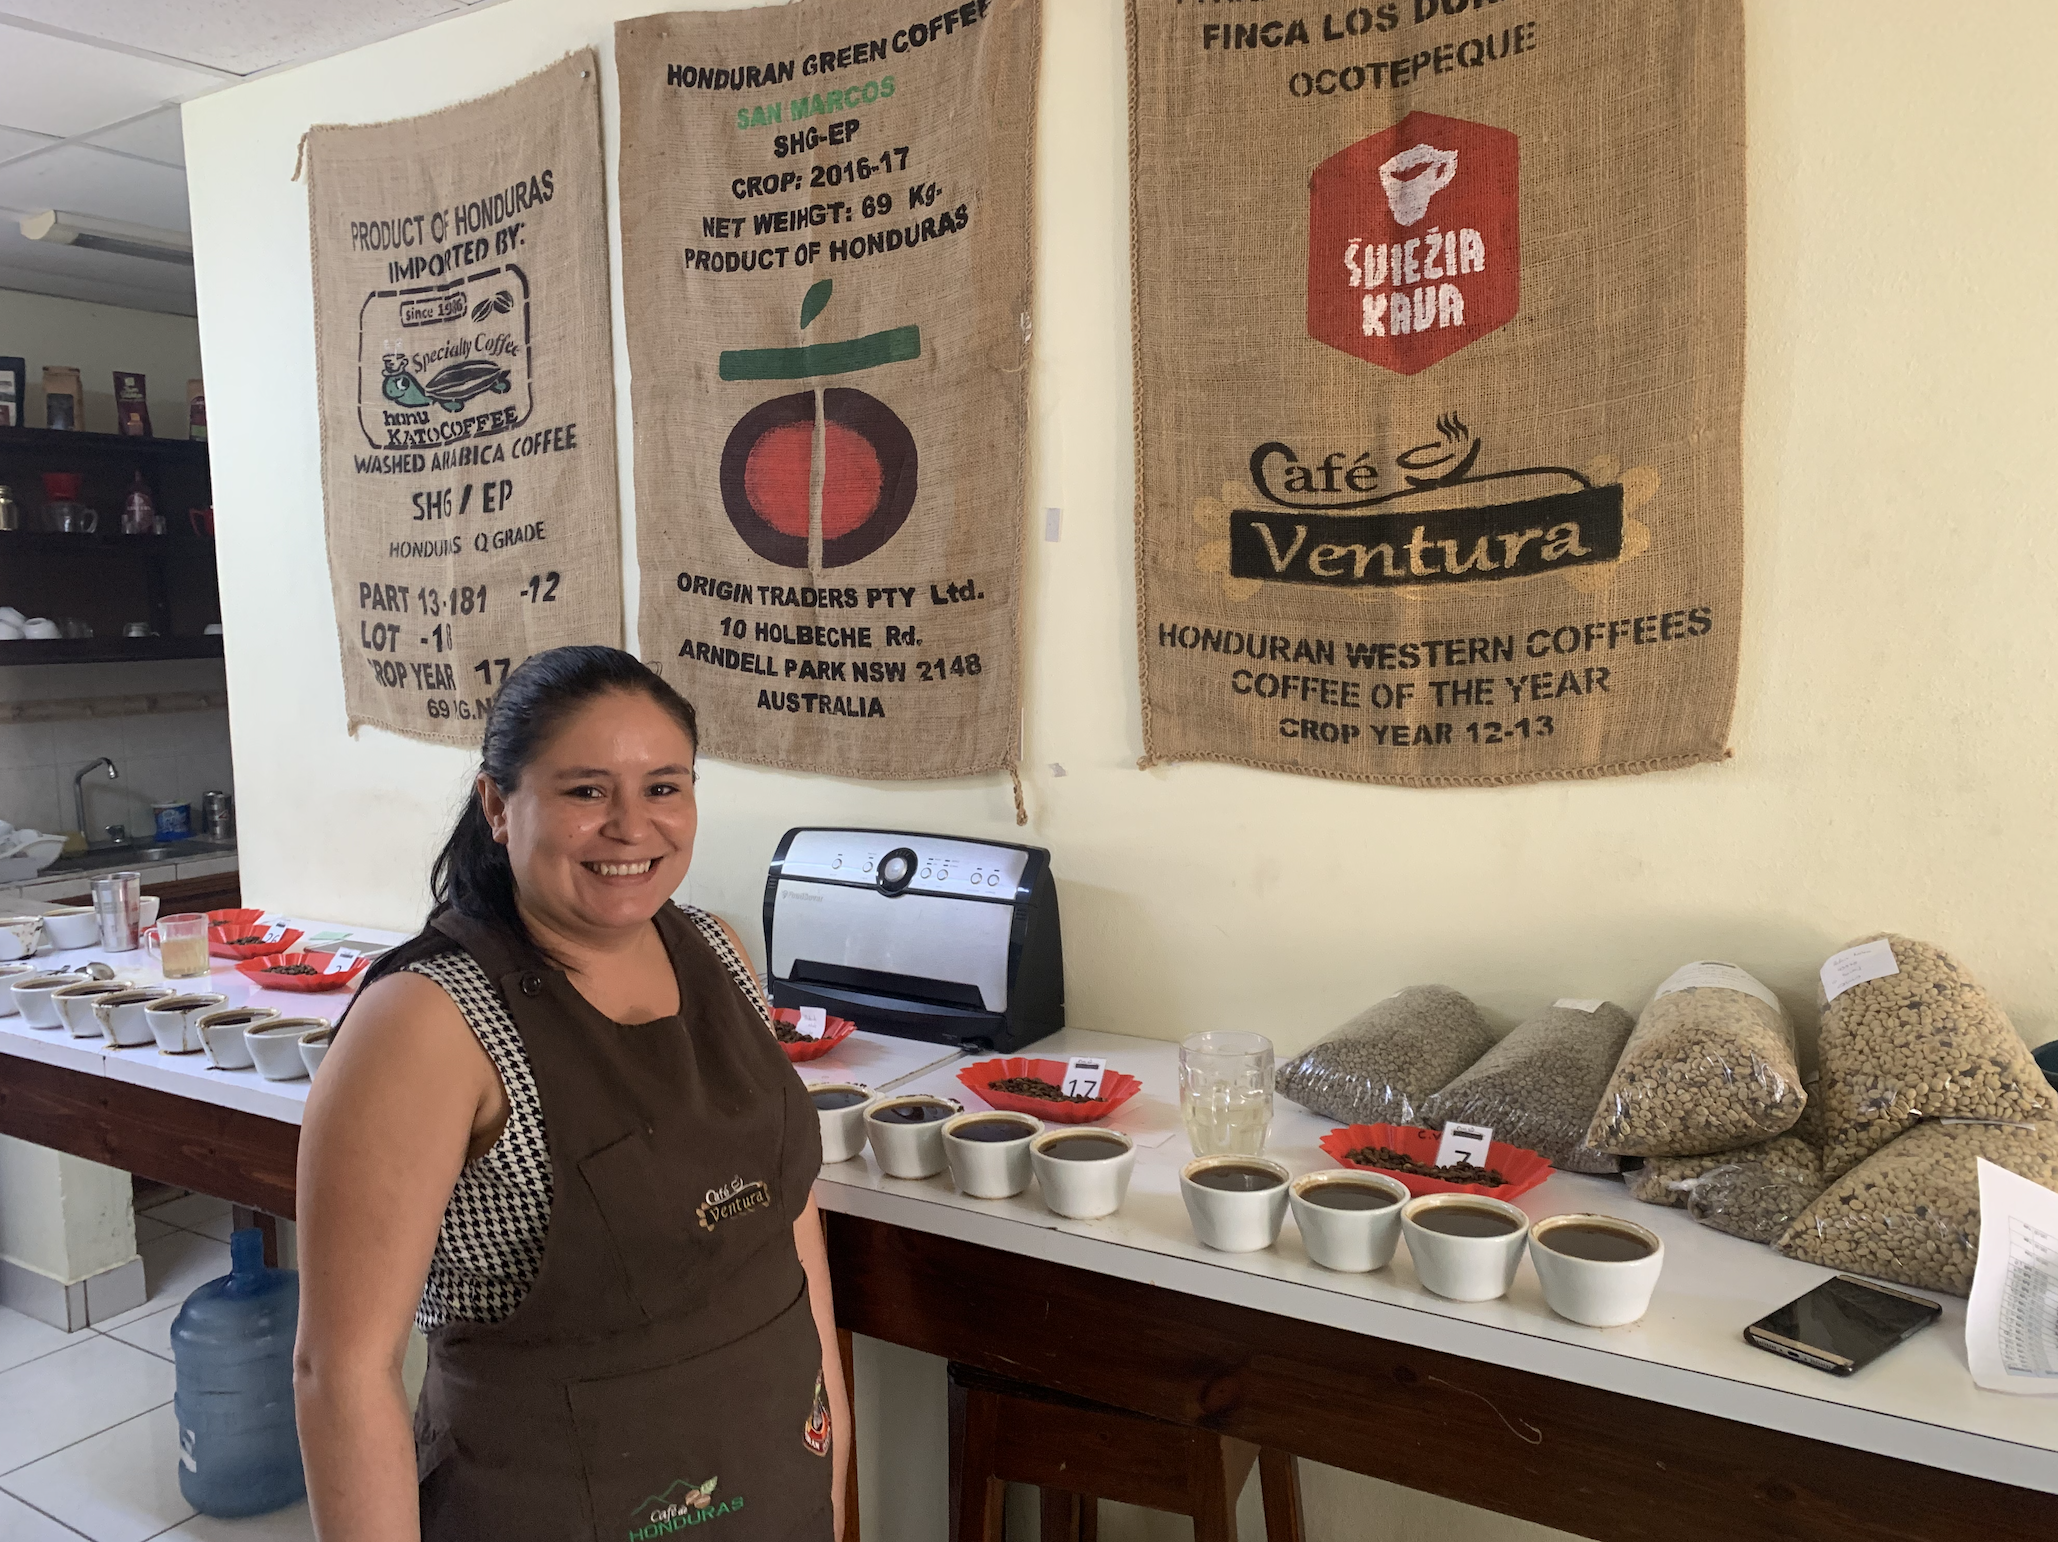 Our Q-Grader Silvia, ready for a cupping session